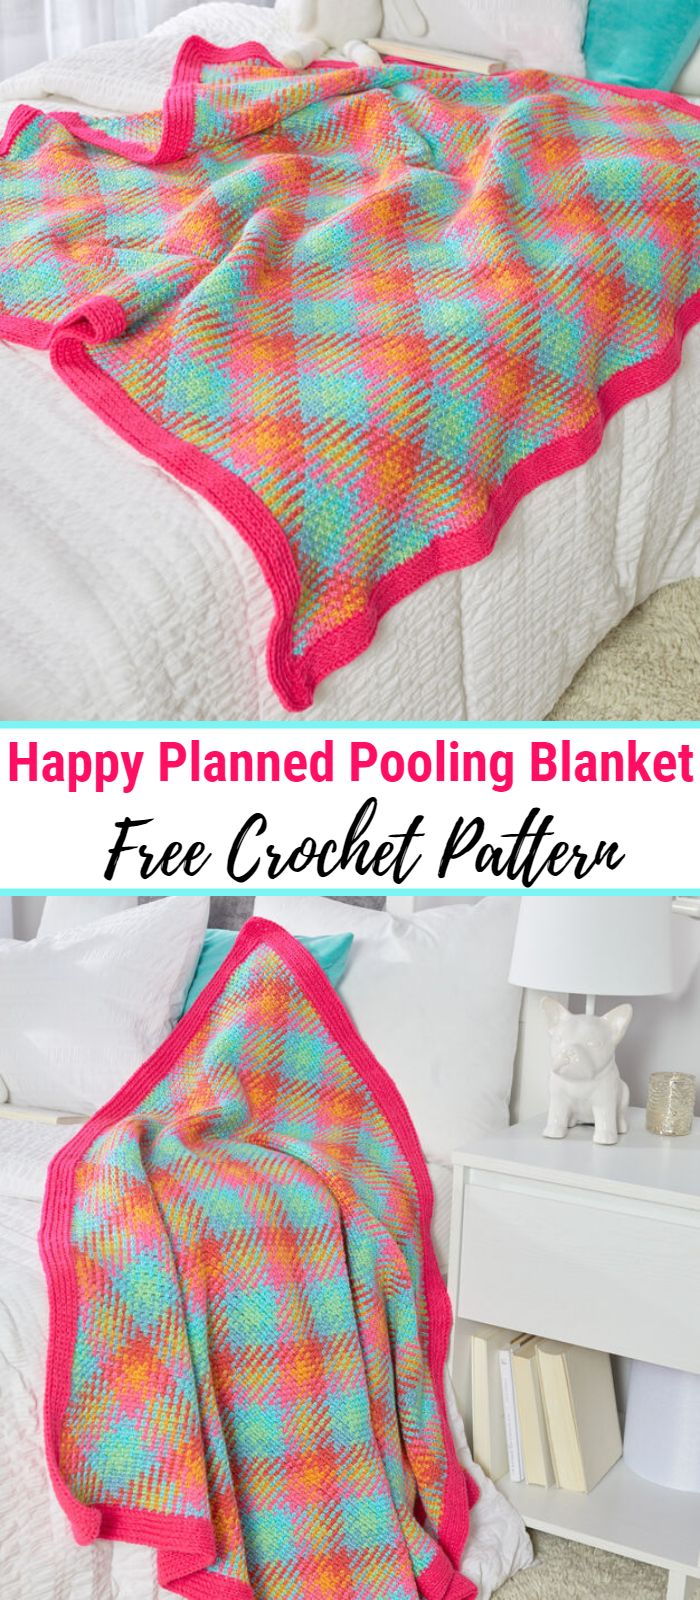 Happy Planned Pooling Blanket